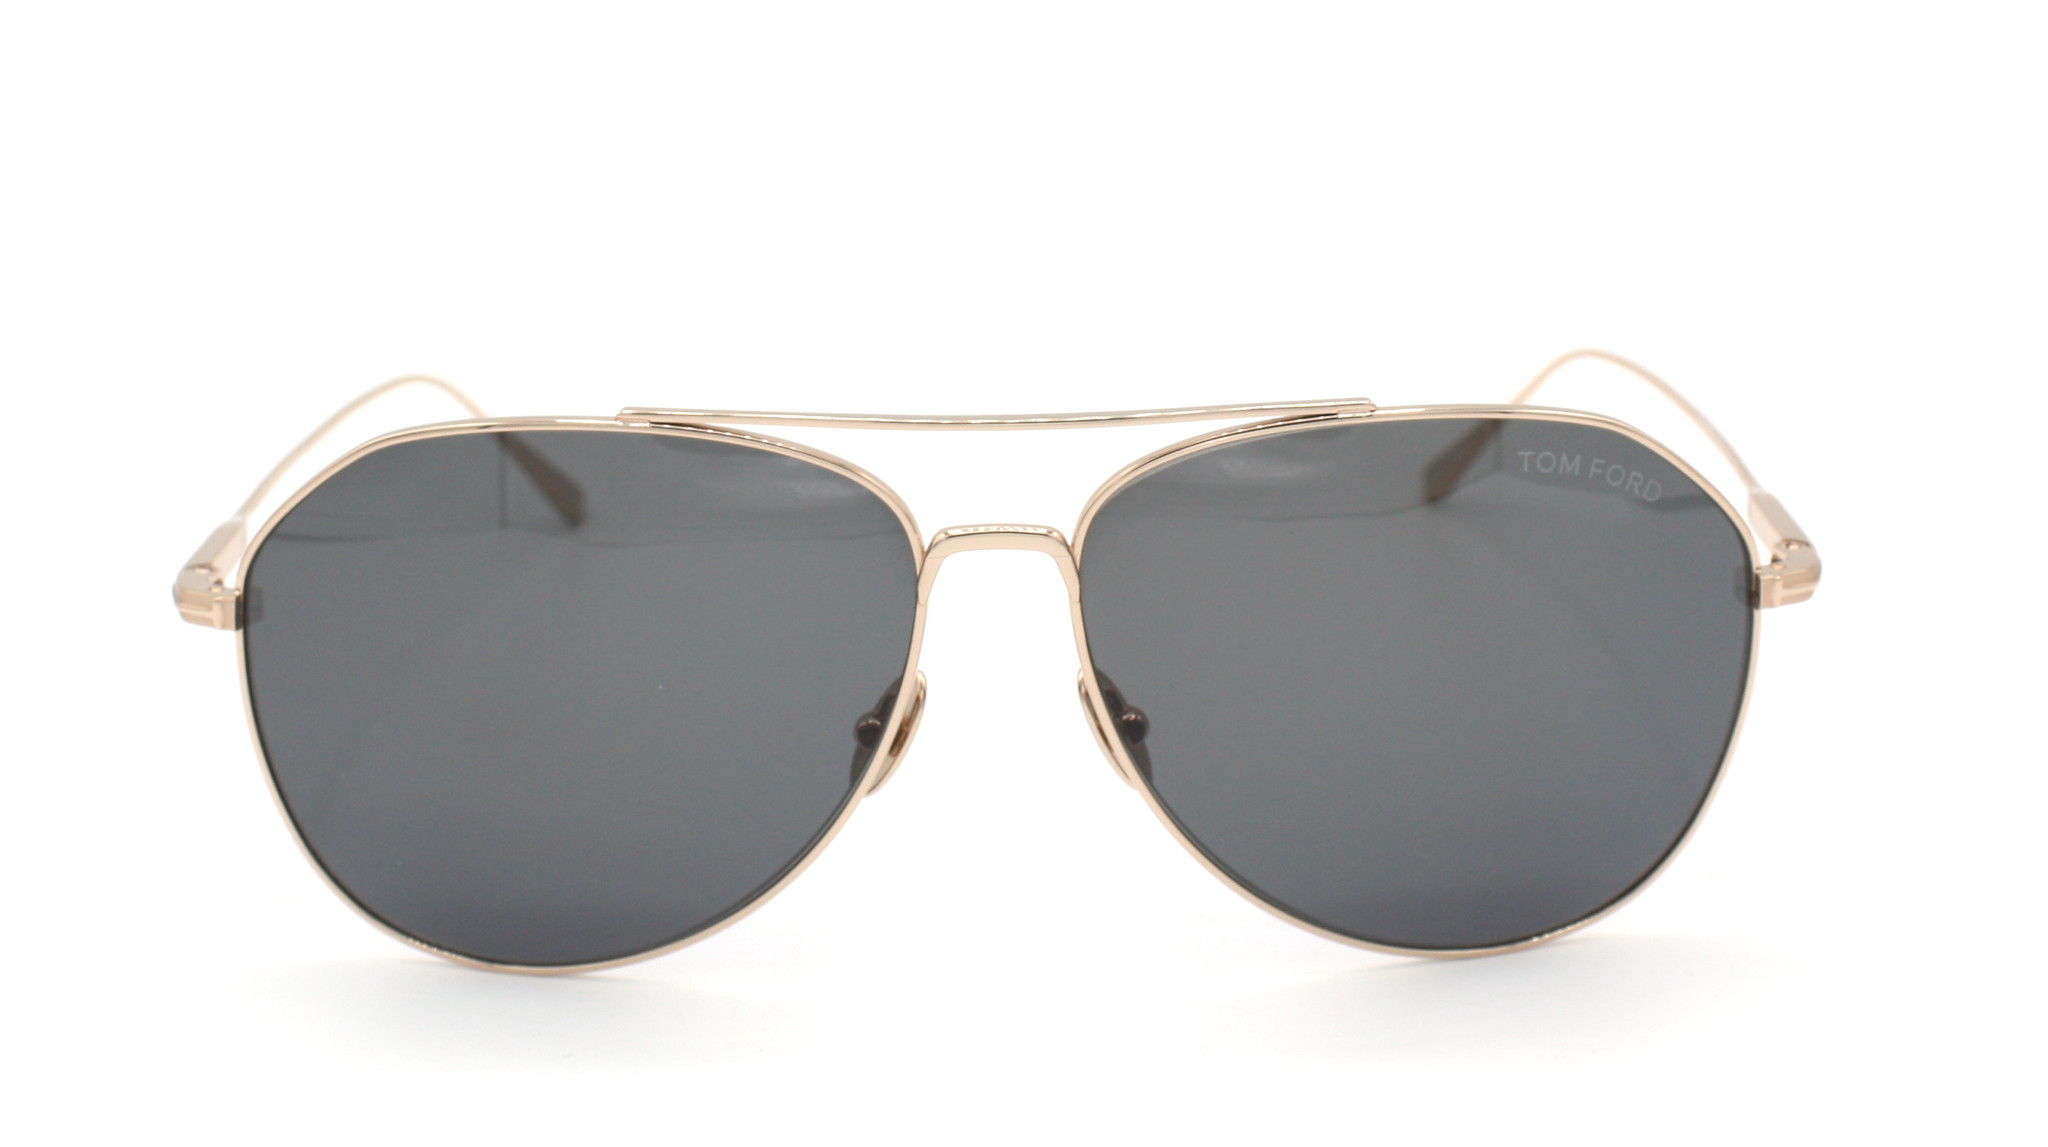 Tom Ford - TF747/S - 28A-1